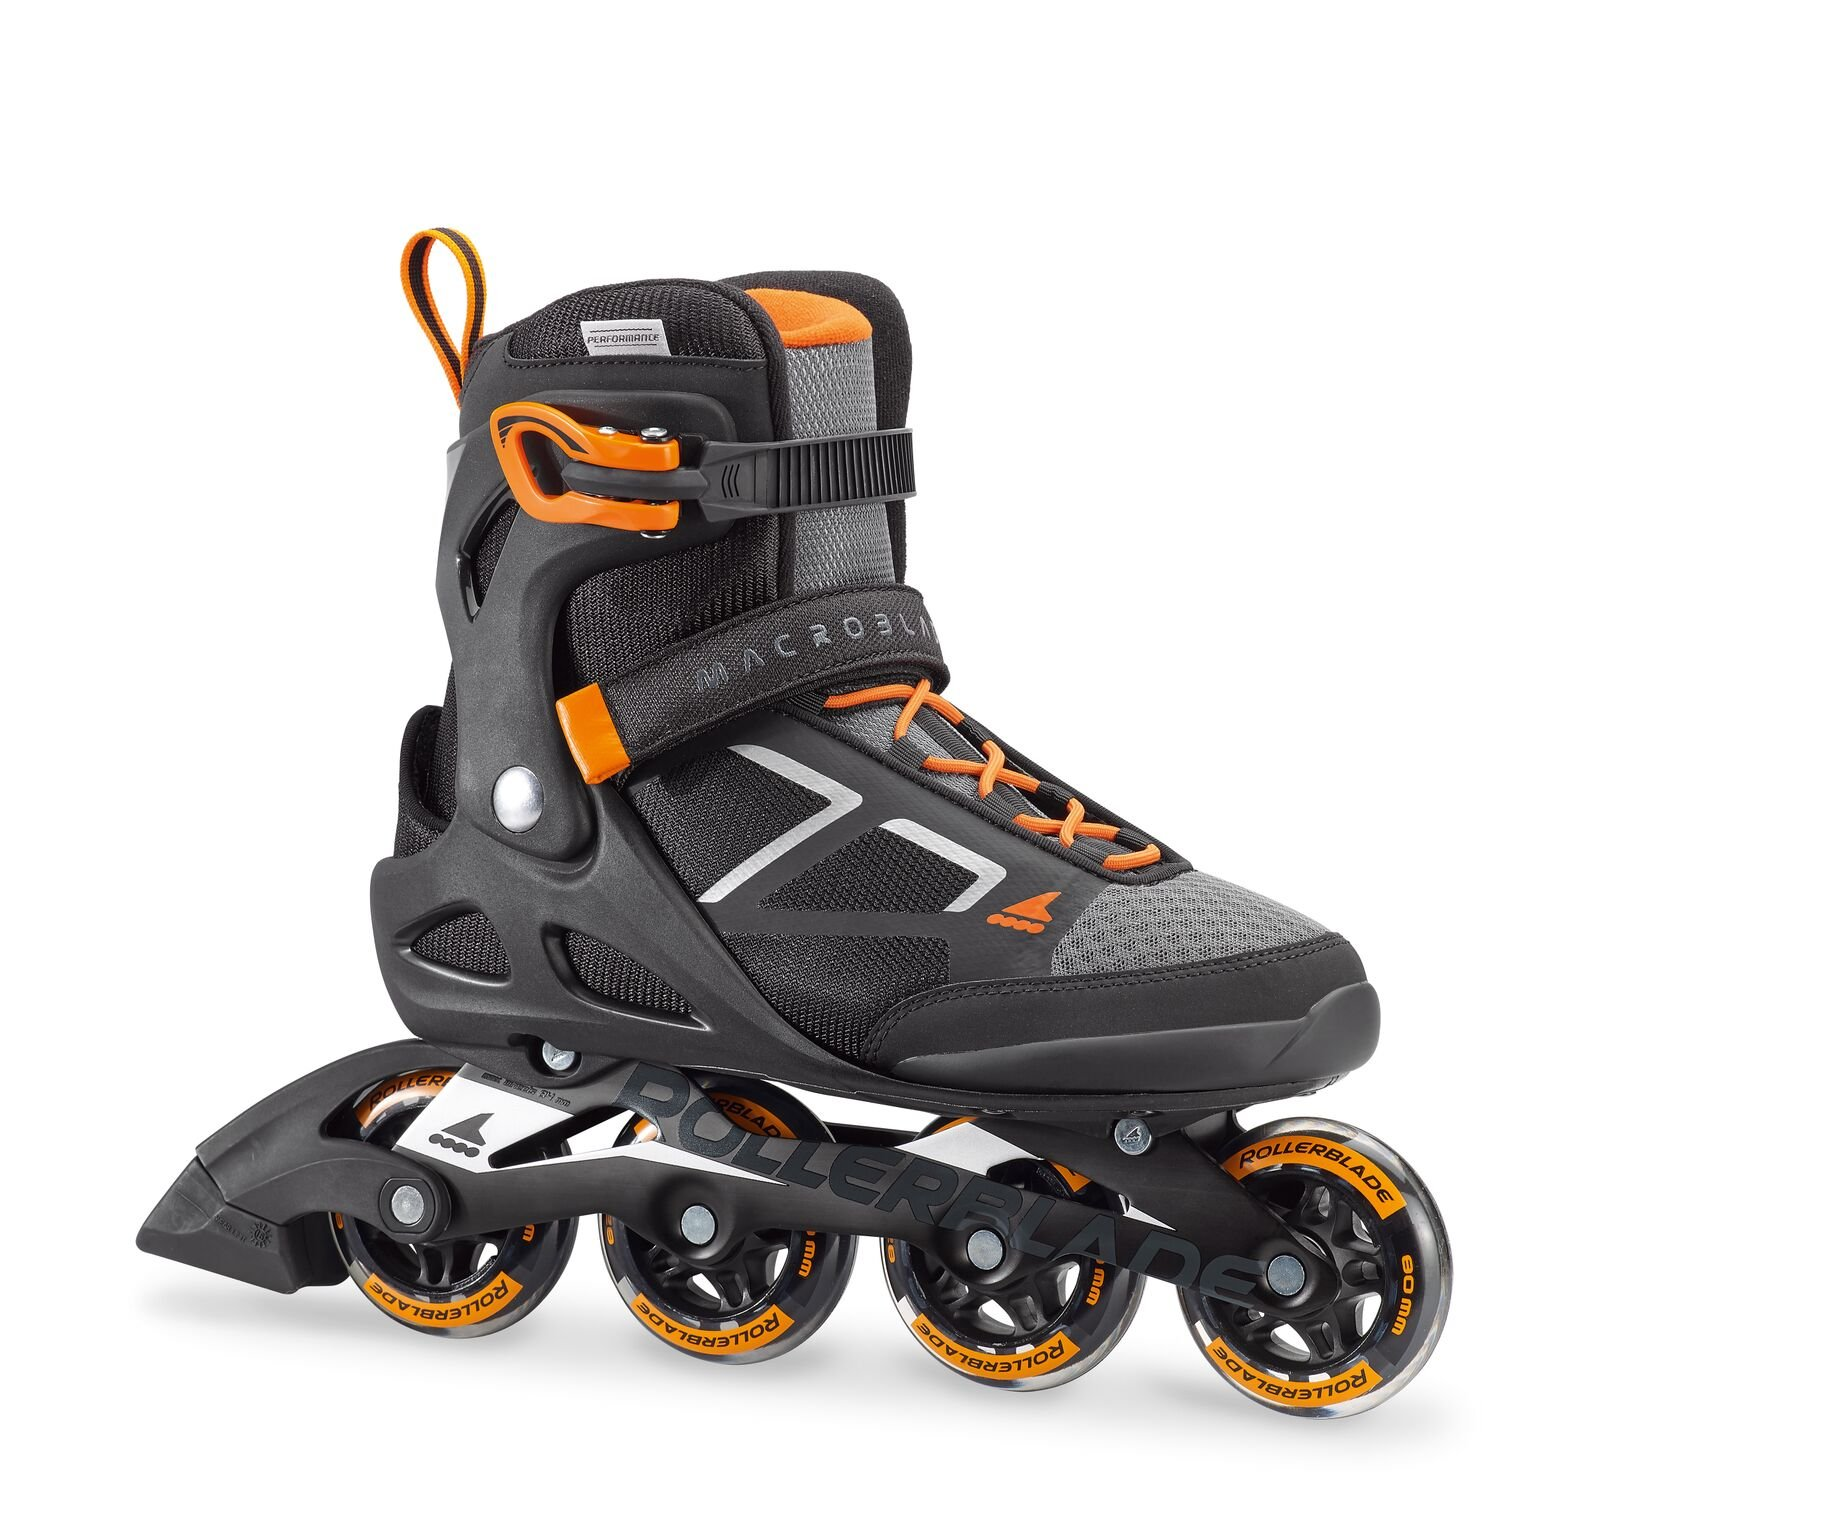 Rollerblade Rollerblade Macroblade 80 Mens Adult Fitness Inline Skate - Black/Orange - 80 mm / 82A Wheels with SG5 Bearings - Performance Skates - US size 10, Black/Orange, Size 10 by Rollerblade